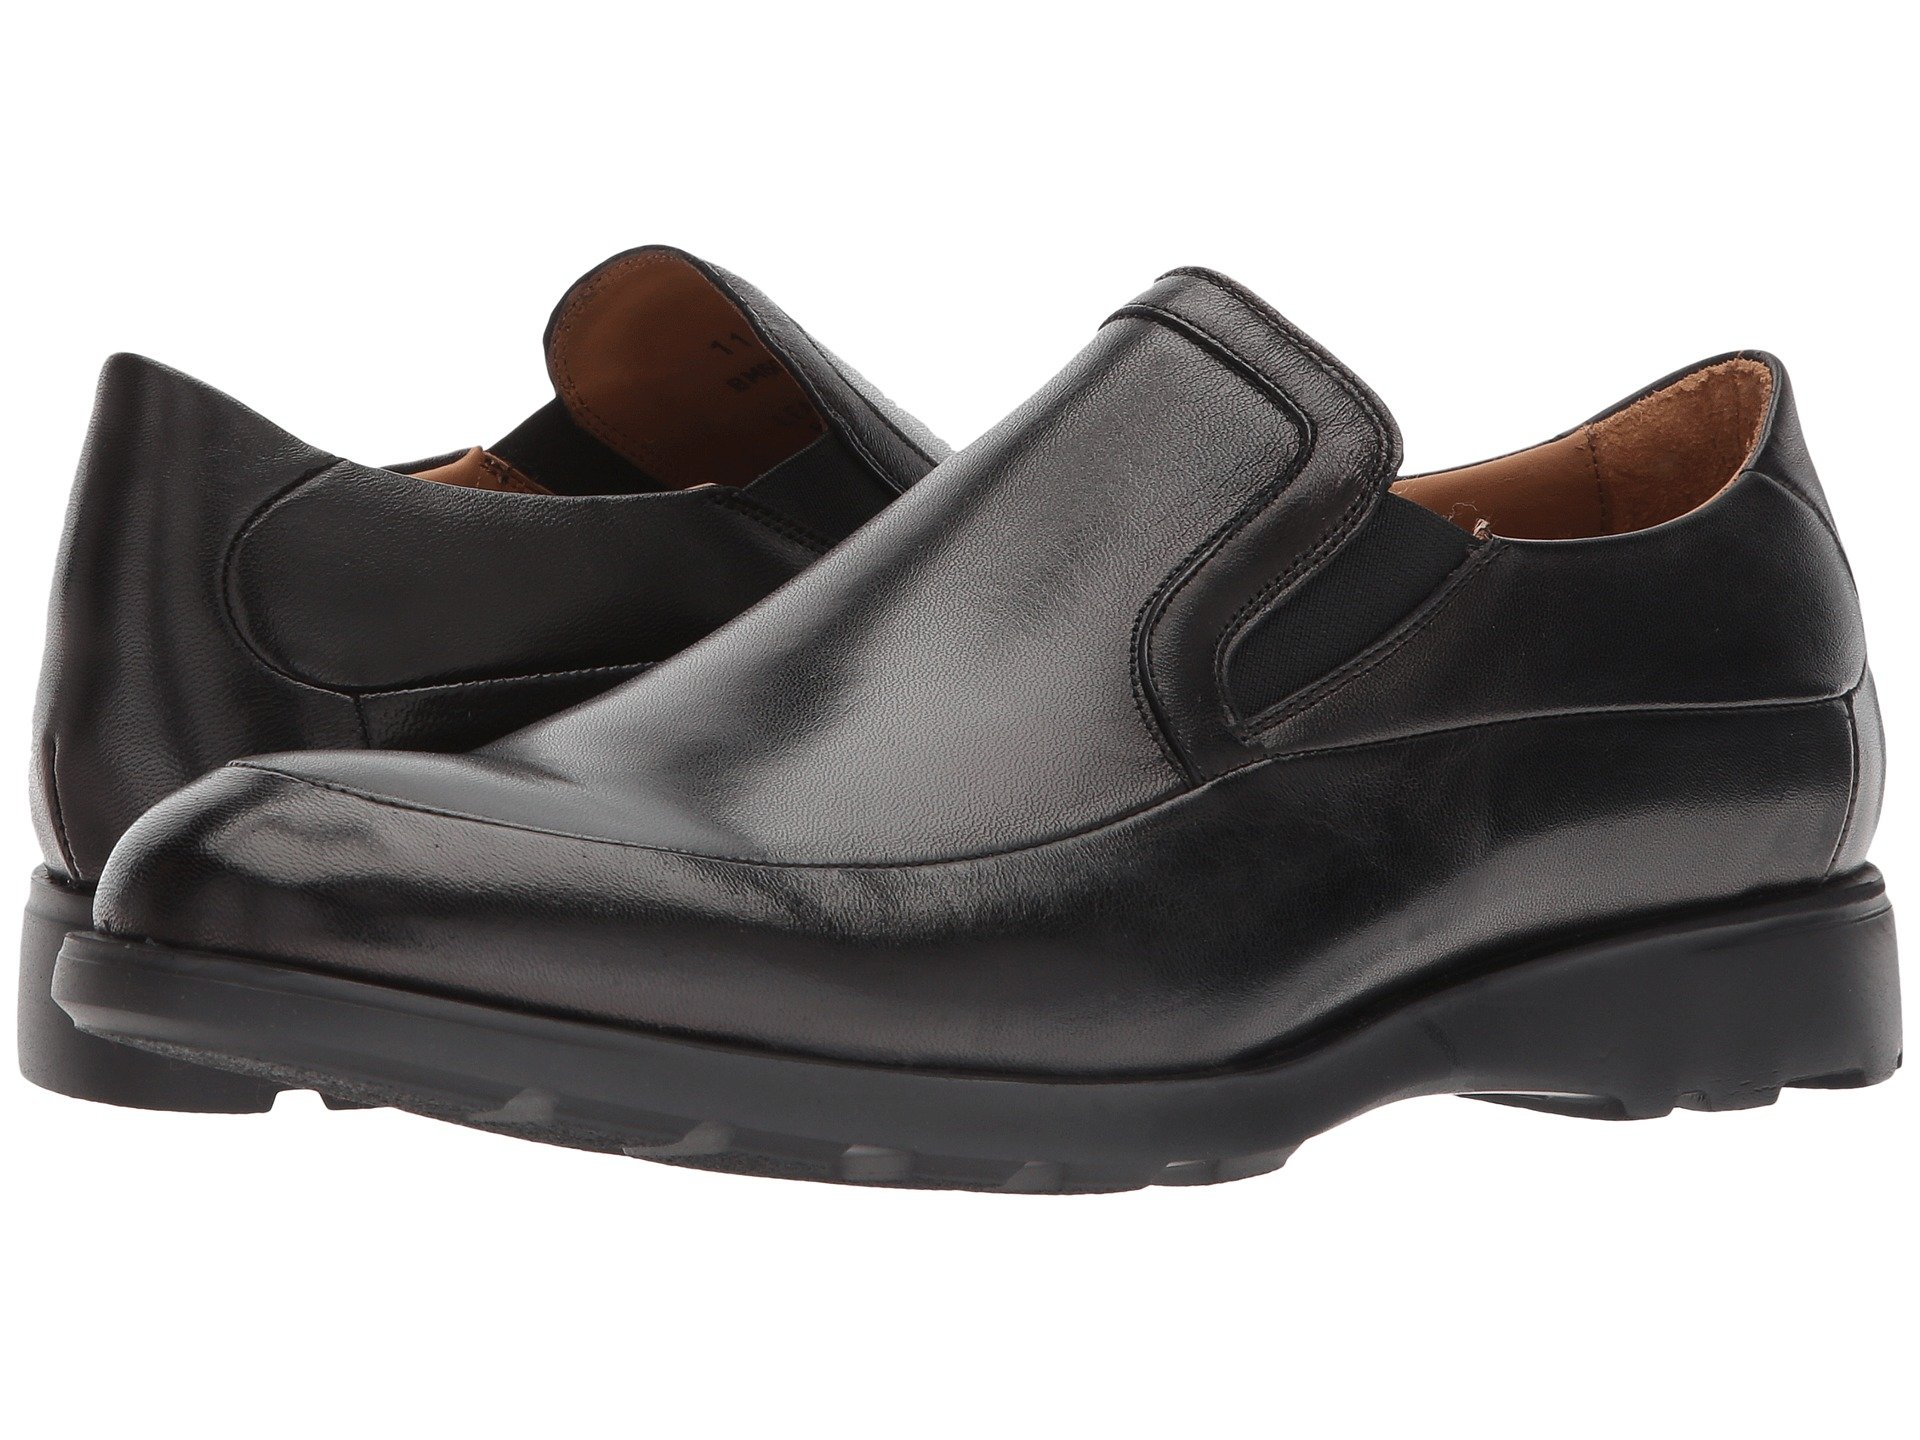 ca8b44fd566 Men's Bruno Magli Loafers + FREE SHIPPING | Shoes | Zappos.com